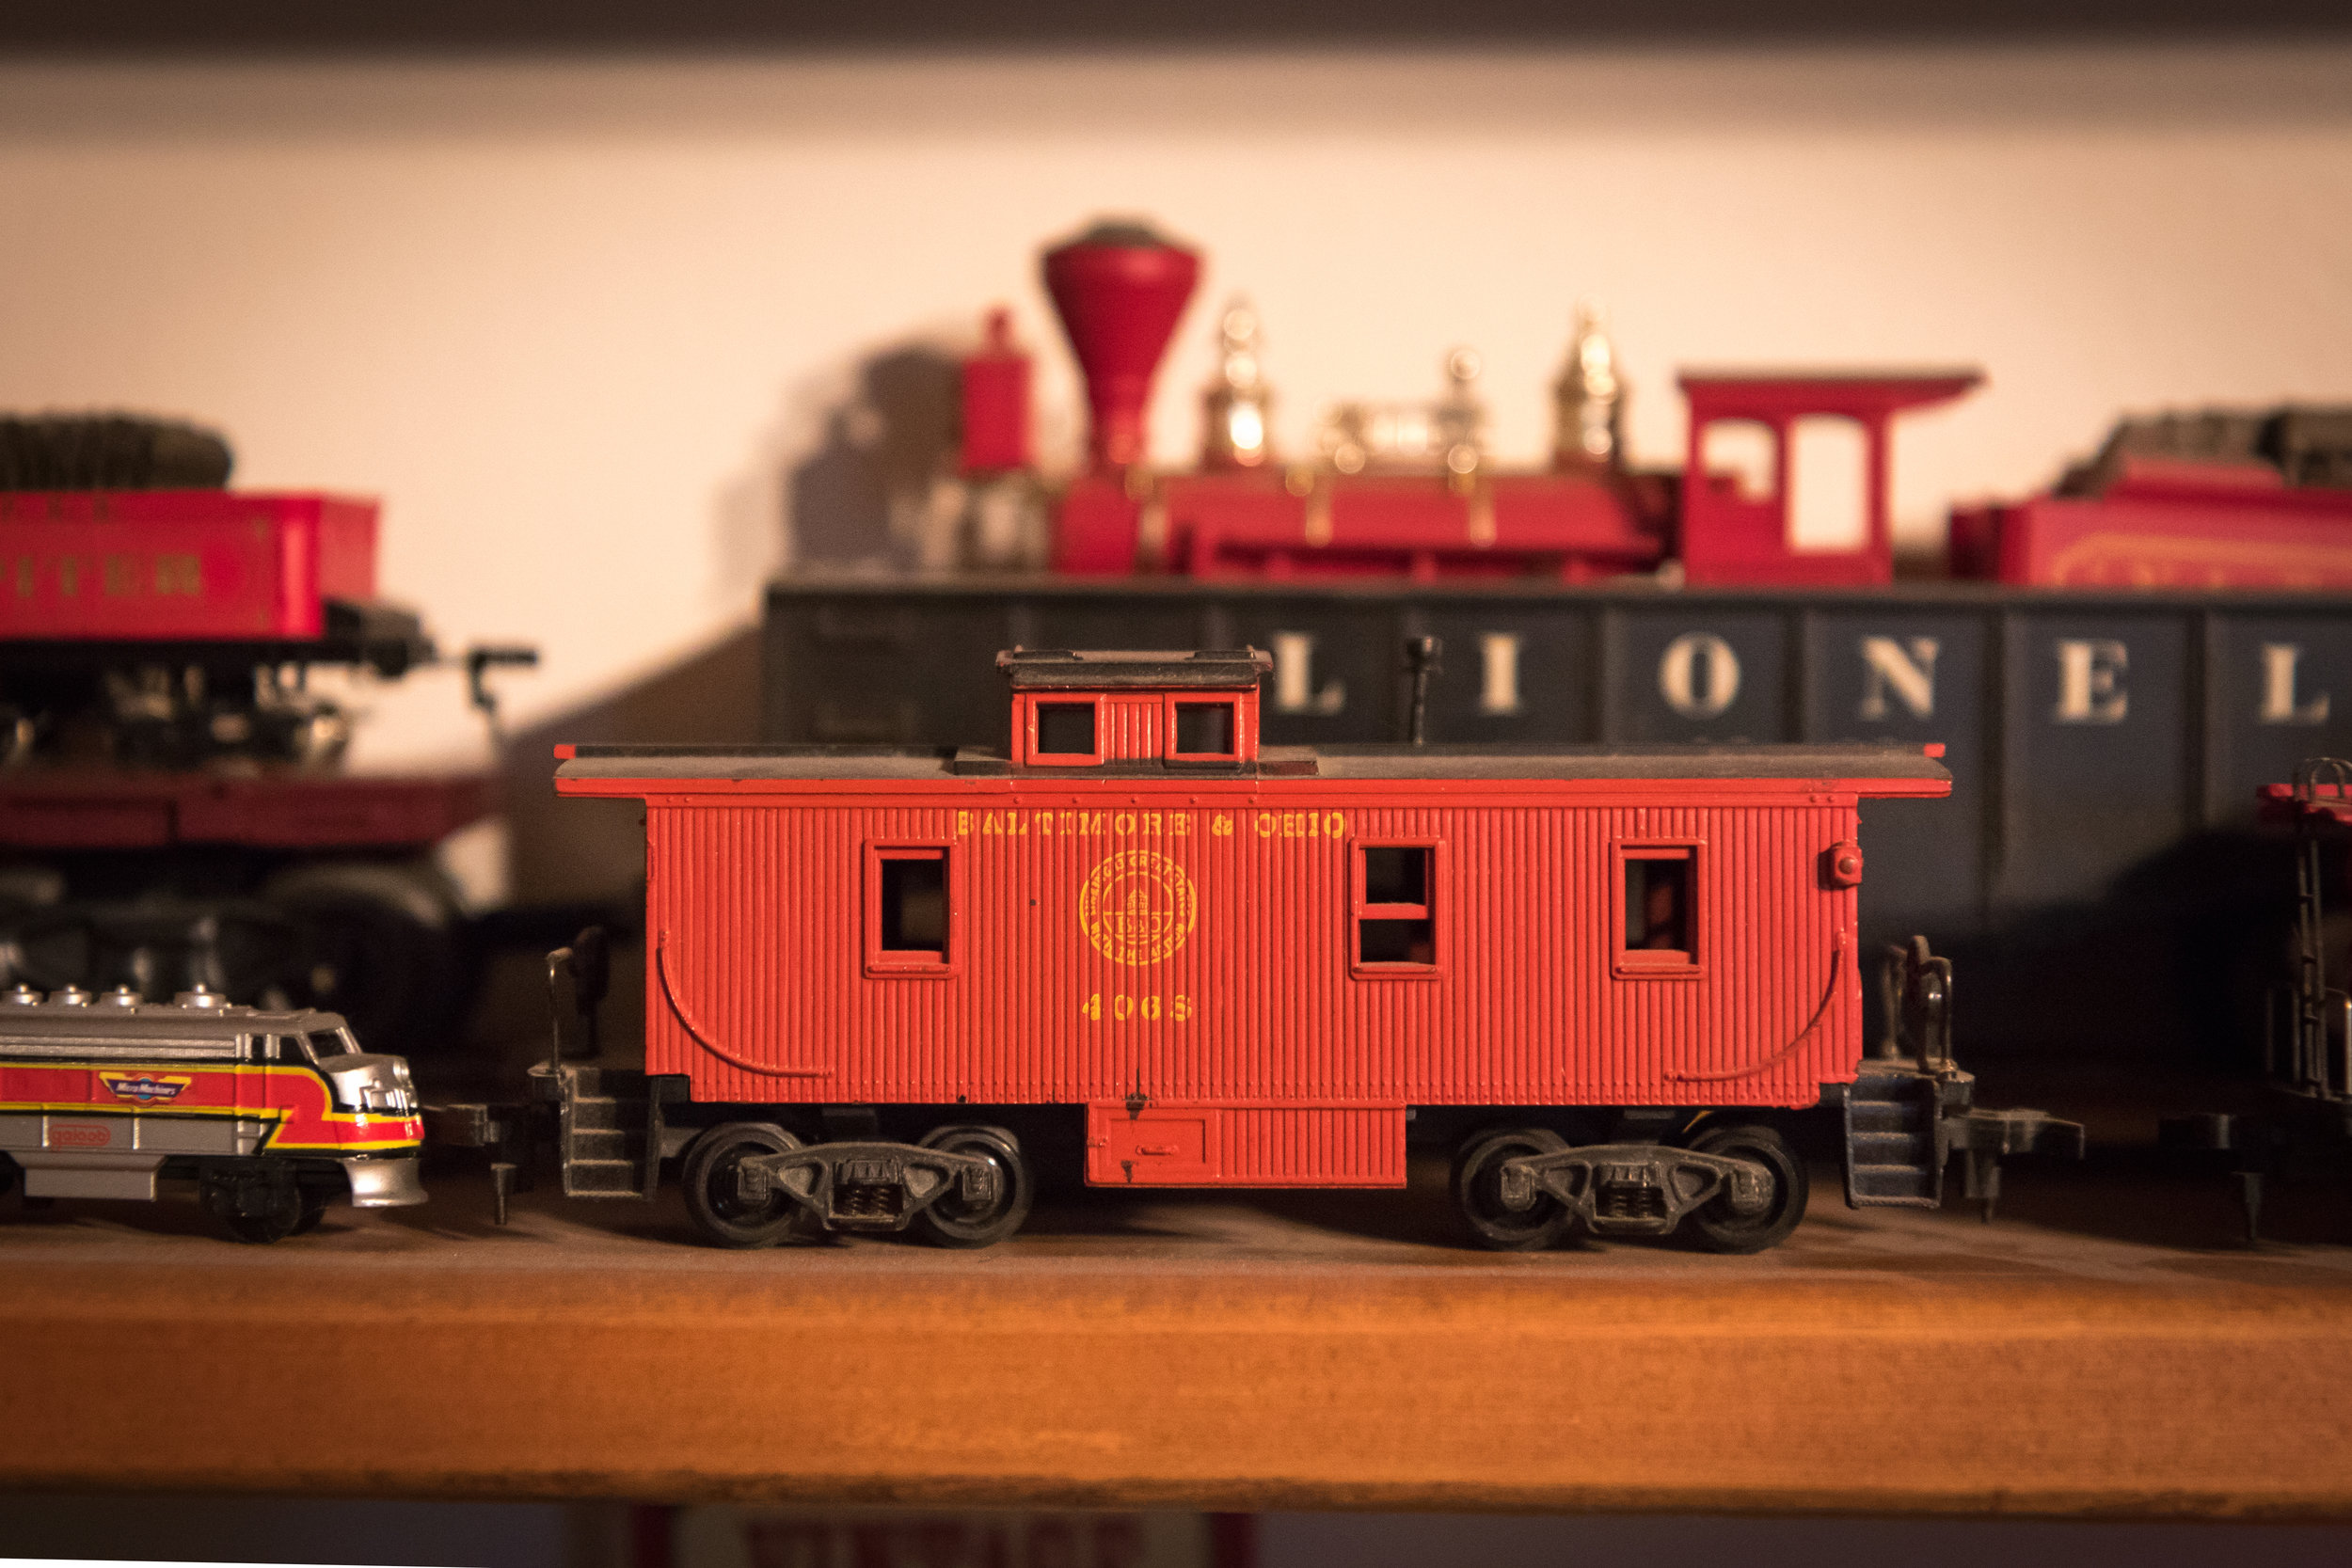 The first model train piece that Hall purchased as a young boy was a red caboose. His mother recommended that he start at the back and work forward.